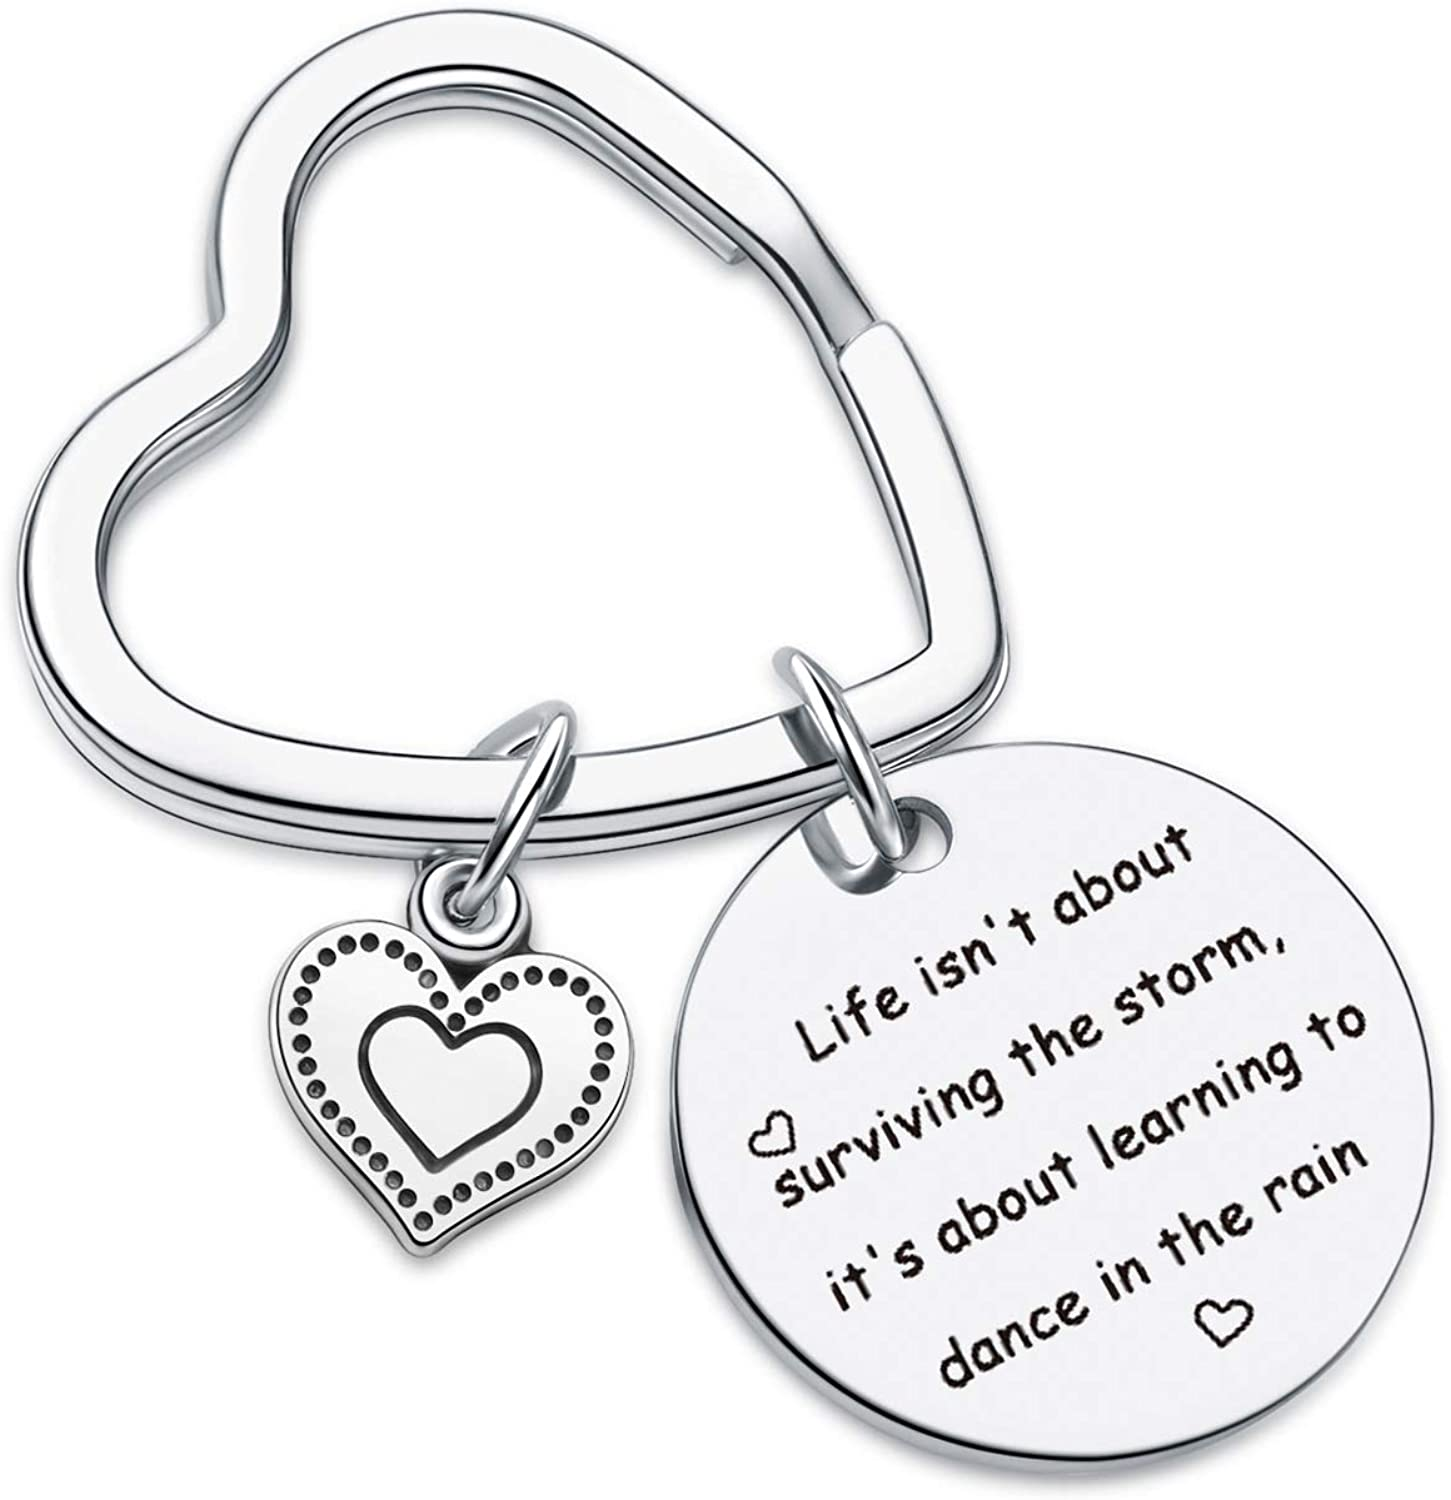 7RVZM Inspirational Jewelry for Daughter Gift Best Friend Jewelry motivational Keychain